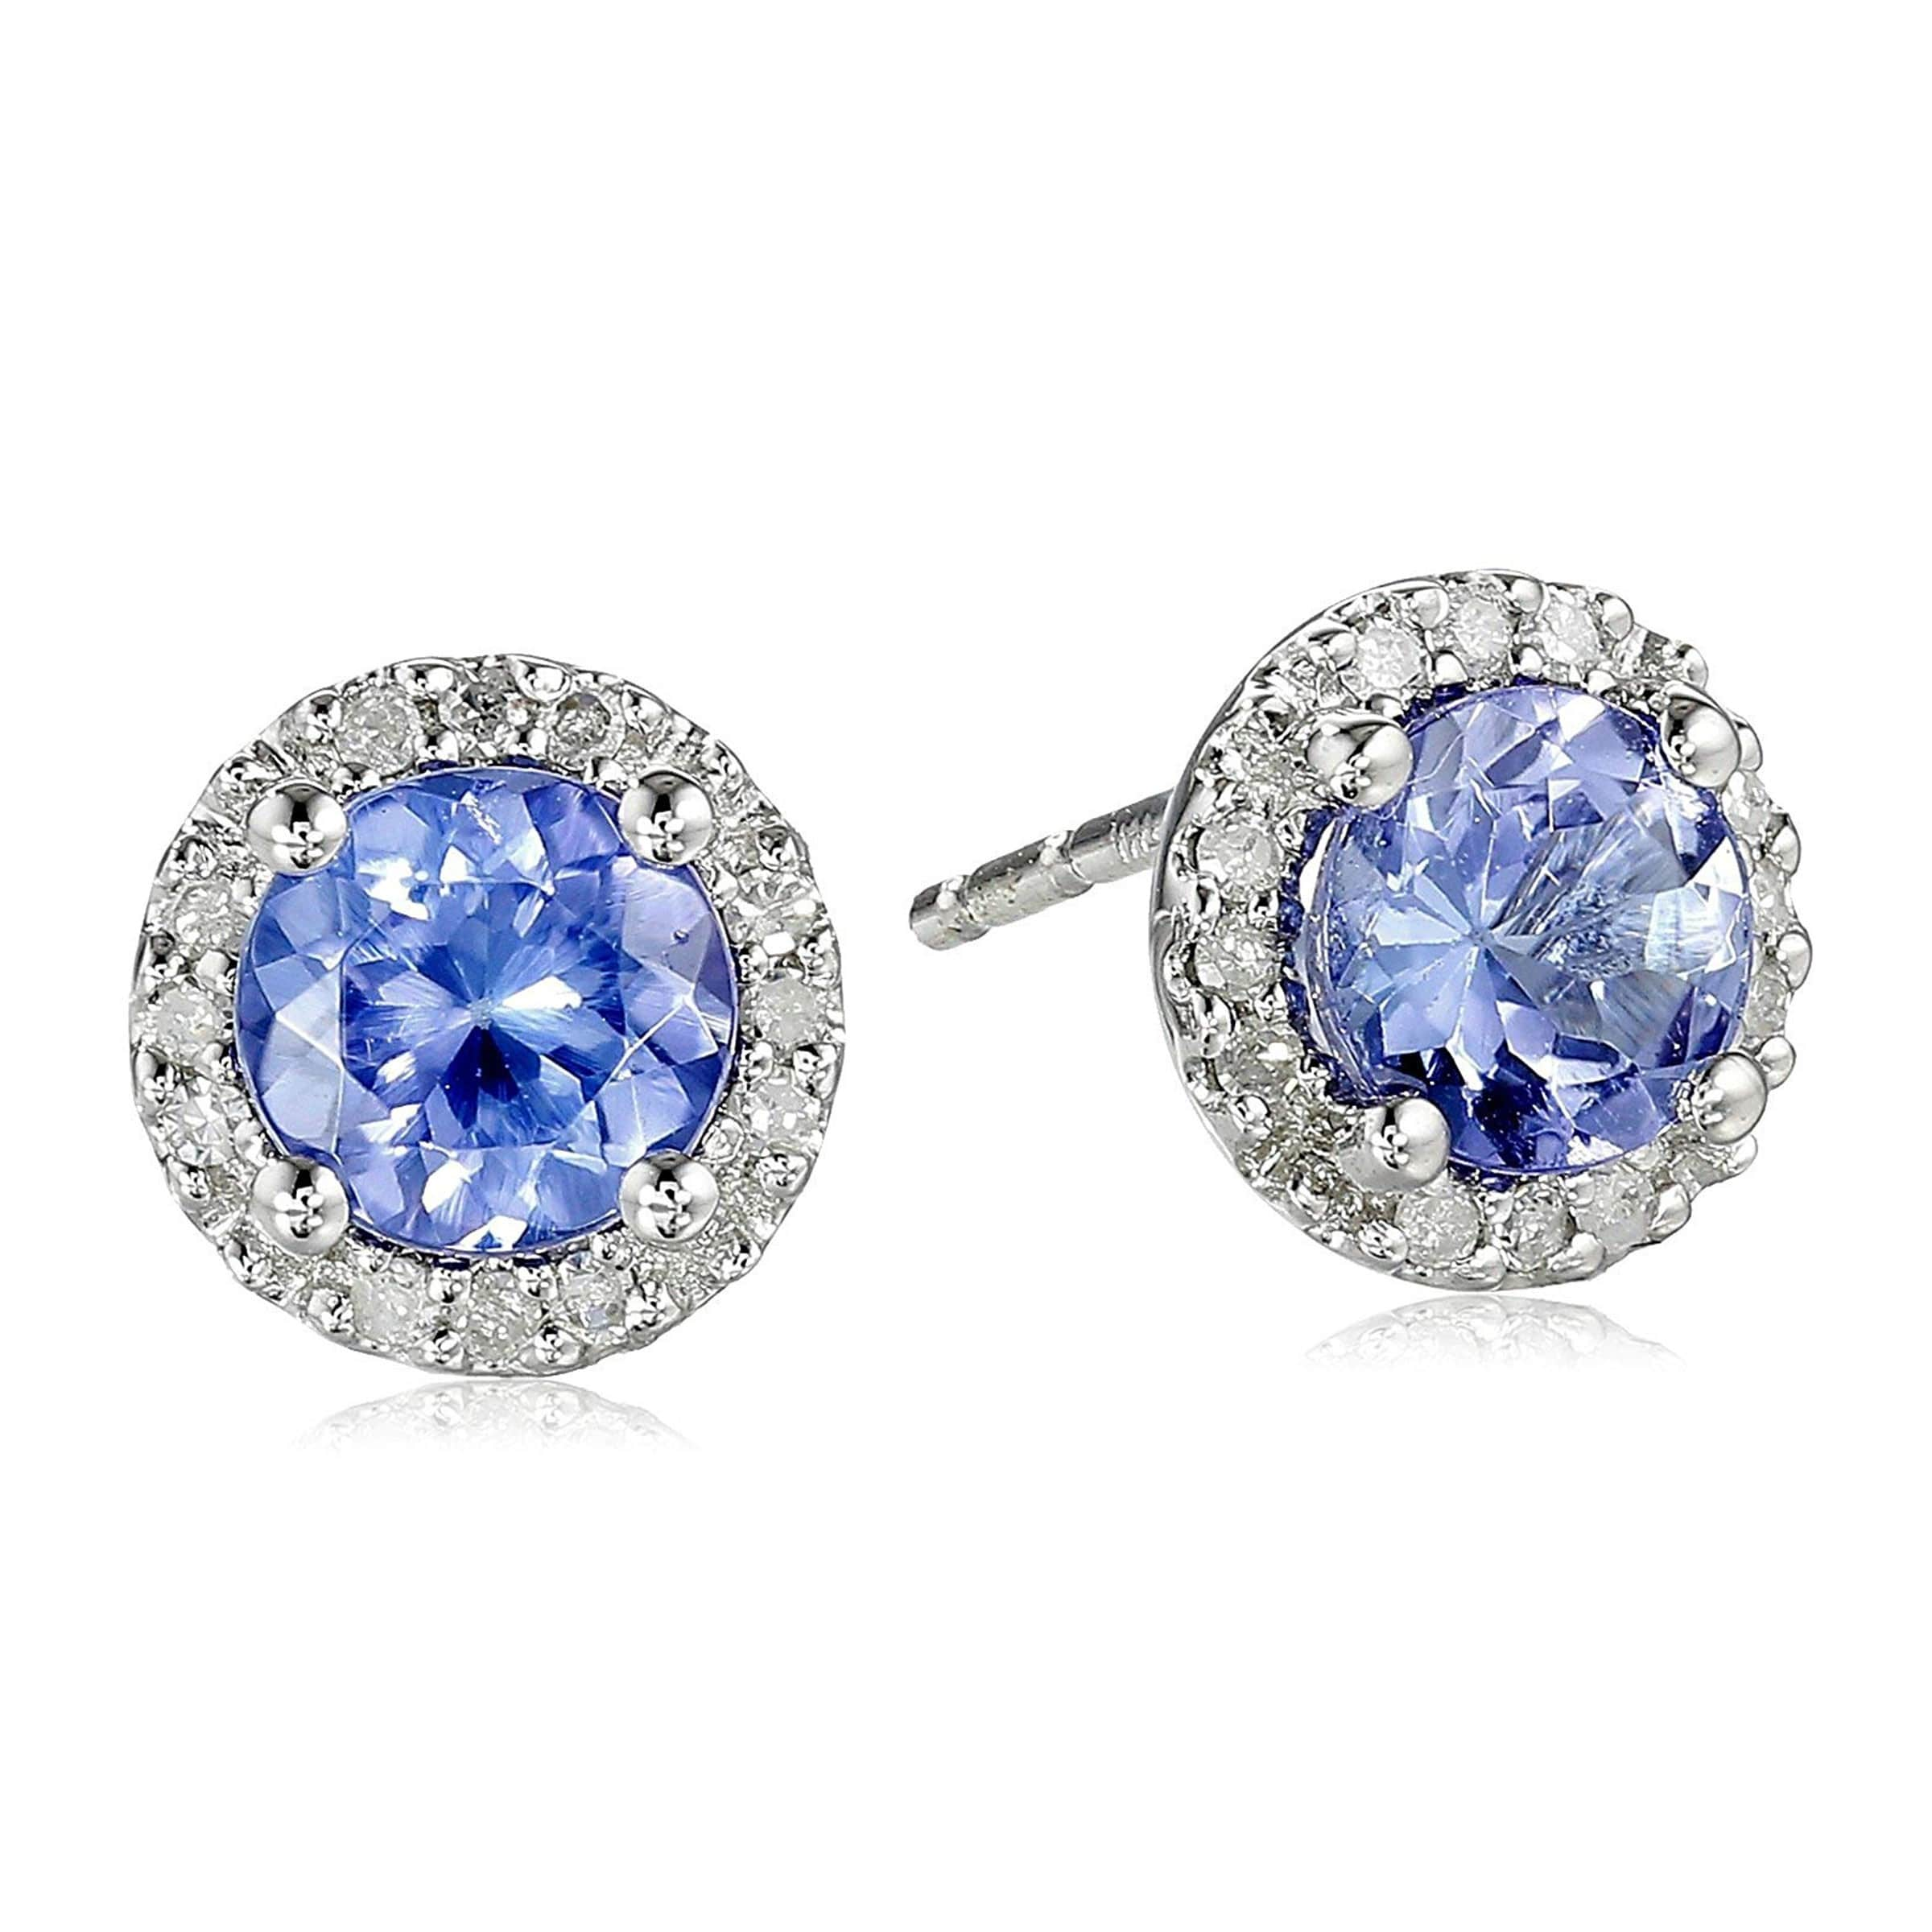 1 1//4 ct Natural Tanzanite /& White Topaz Halo Stud Earrings in 10K White Gold